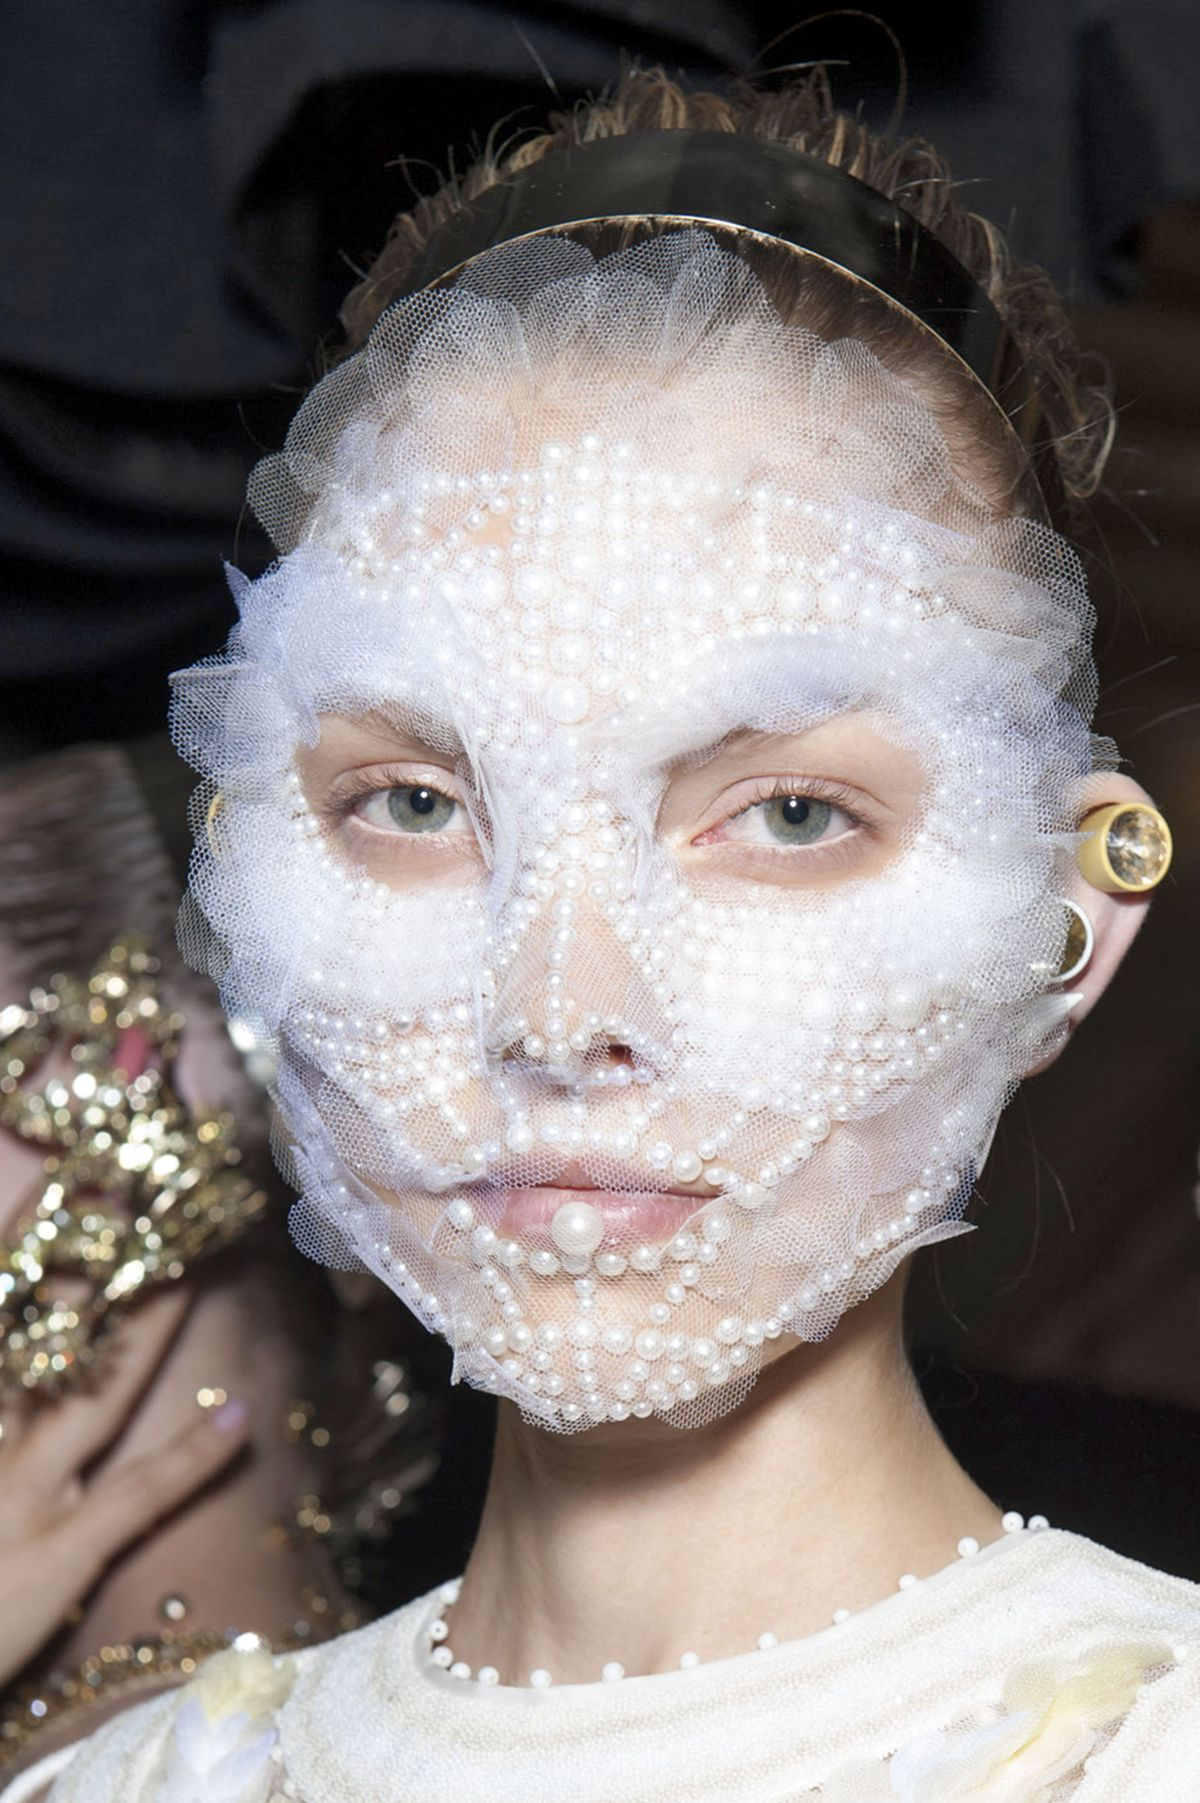 A model wears a pearl-and-lace mask backstage at a Givenchy runway show.